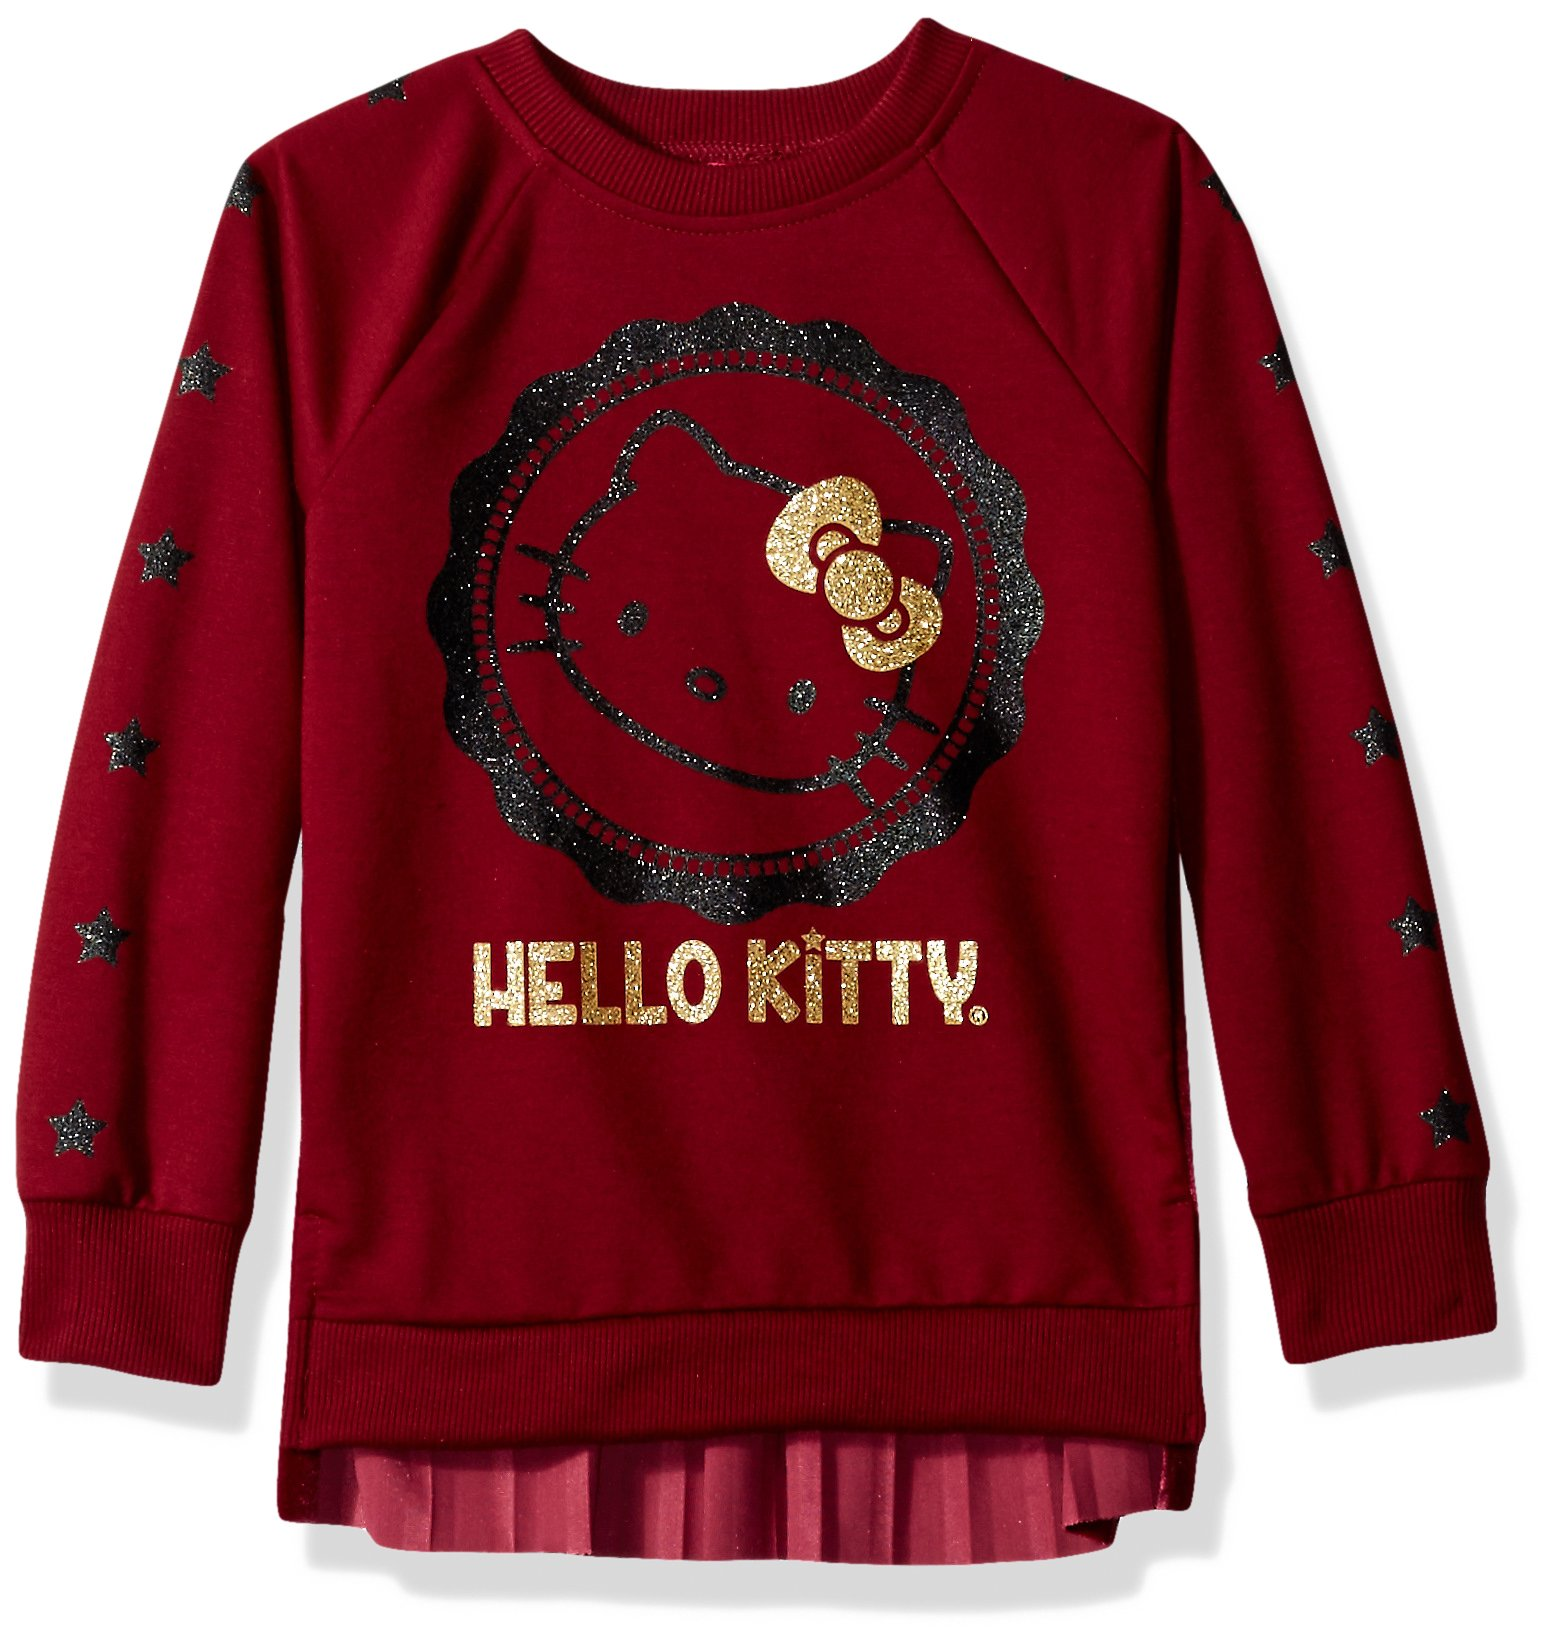 Hello Kitty Big Girls' Sweatshirt with Glitter Artwork and Pleated Velvet, Maroon, 7